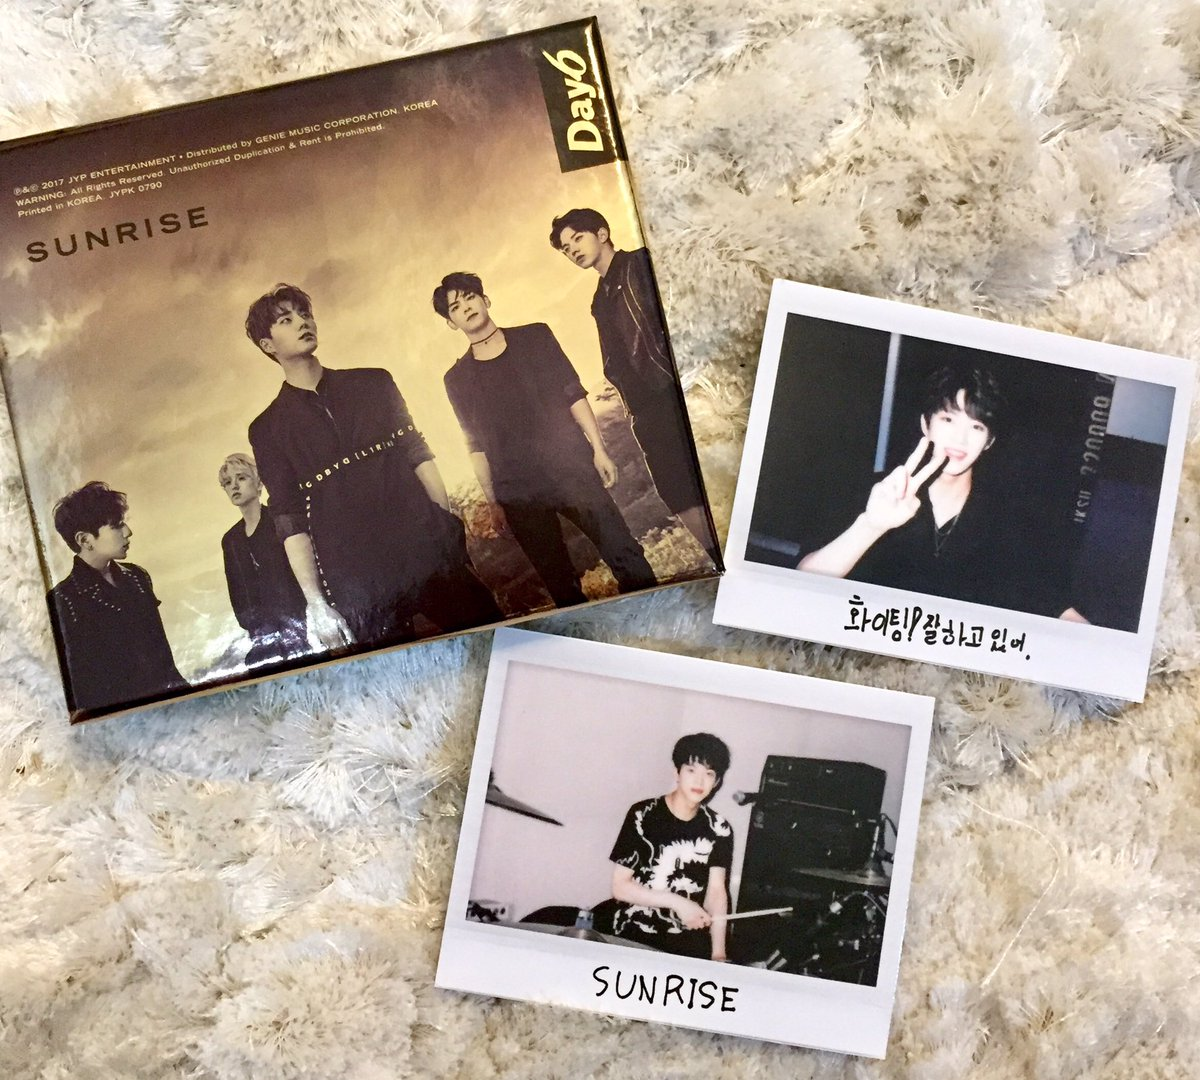 [WTS 🇲🇾] #DAY6 #Sunrise PC - Dowoon studio/ night ver. #Moonrise PC - Wonpil - Dowoon #Gravity PC - Dowoon #Entropy - Sungjin postcard - Dowoon postcard Price: RM20 each (price exclude postage fees) Meetup: NU Sentral DM if interested 😊 @DAY6Malaysia pls help rt